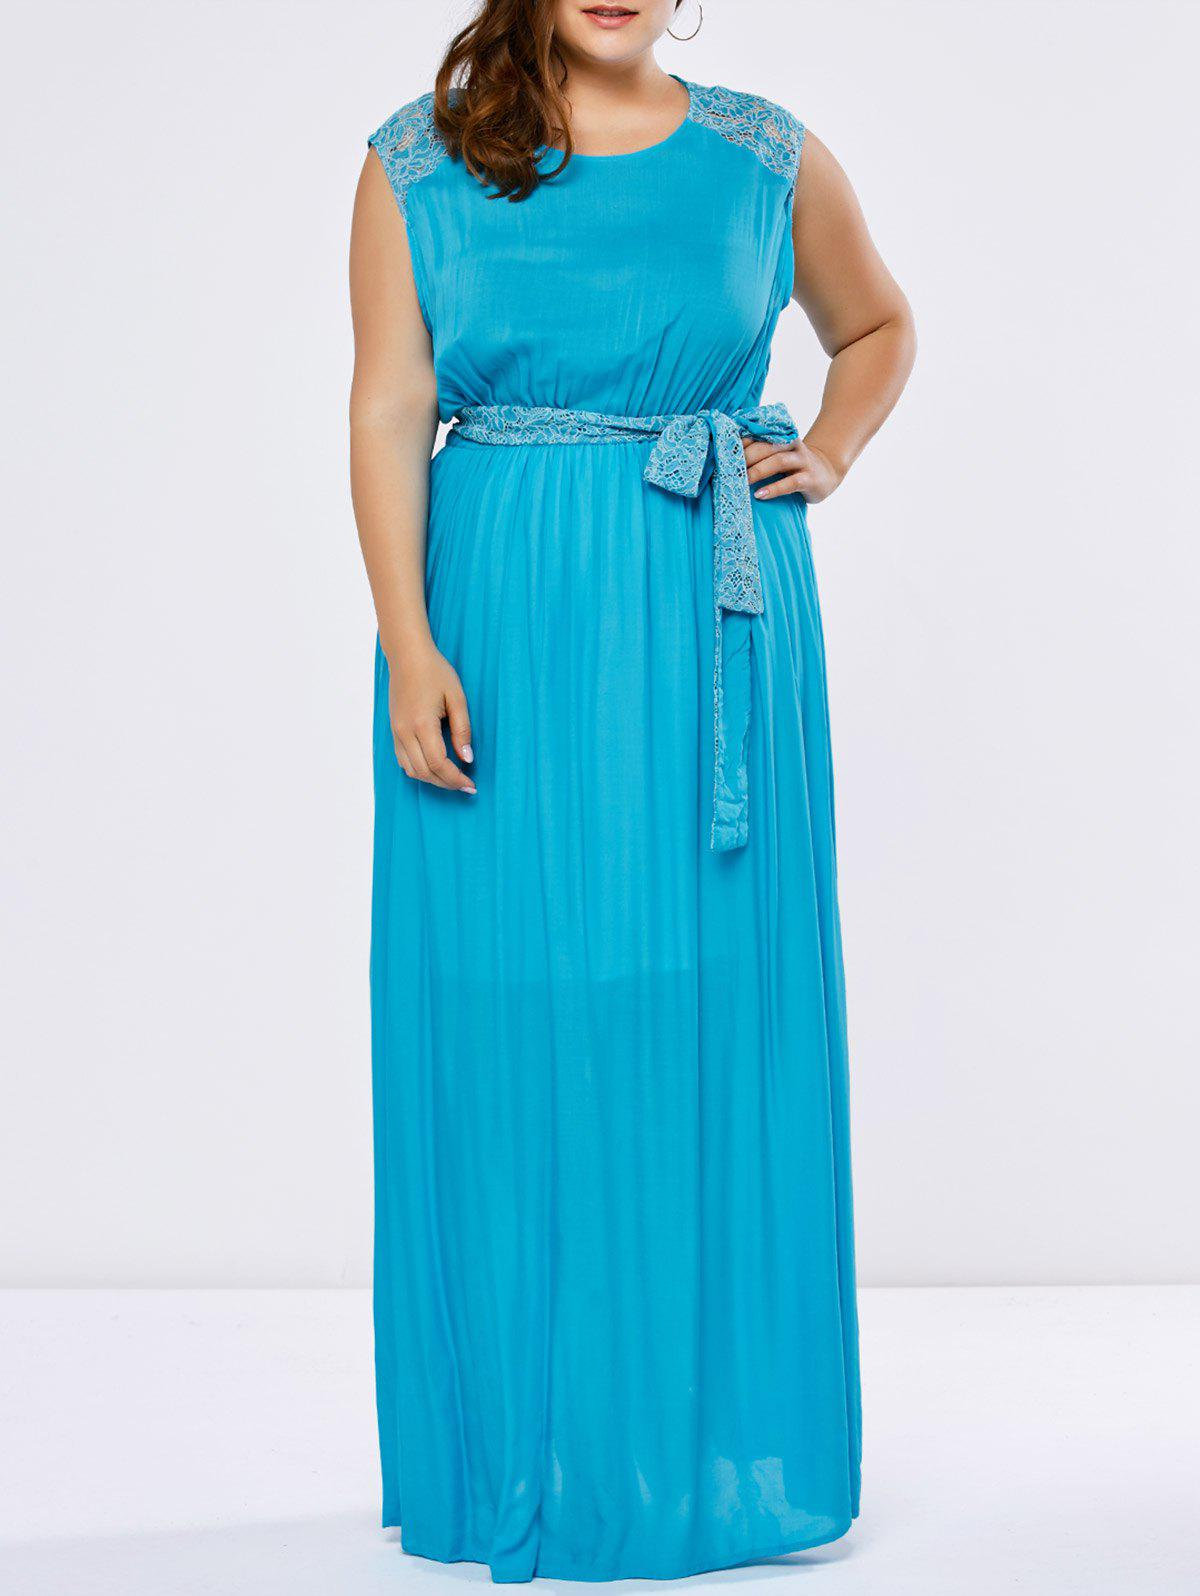 2018 Lace Trim Floor Length Plus Size Prom Dress LAKE BLUE XL In ...